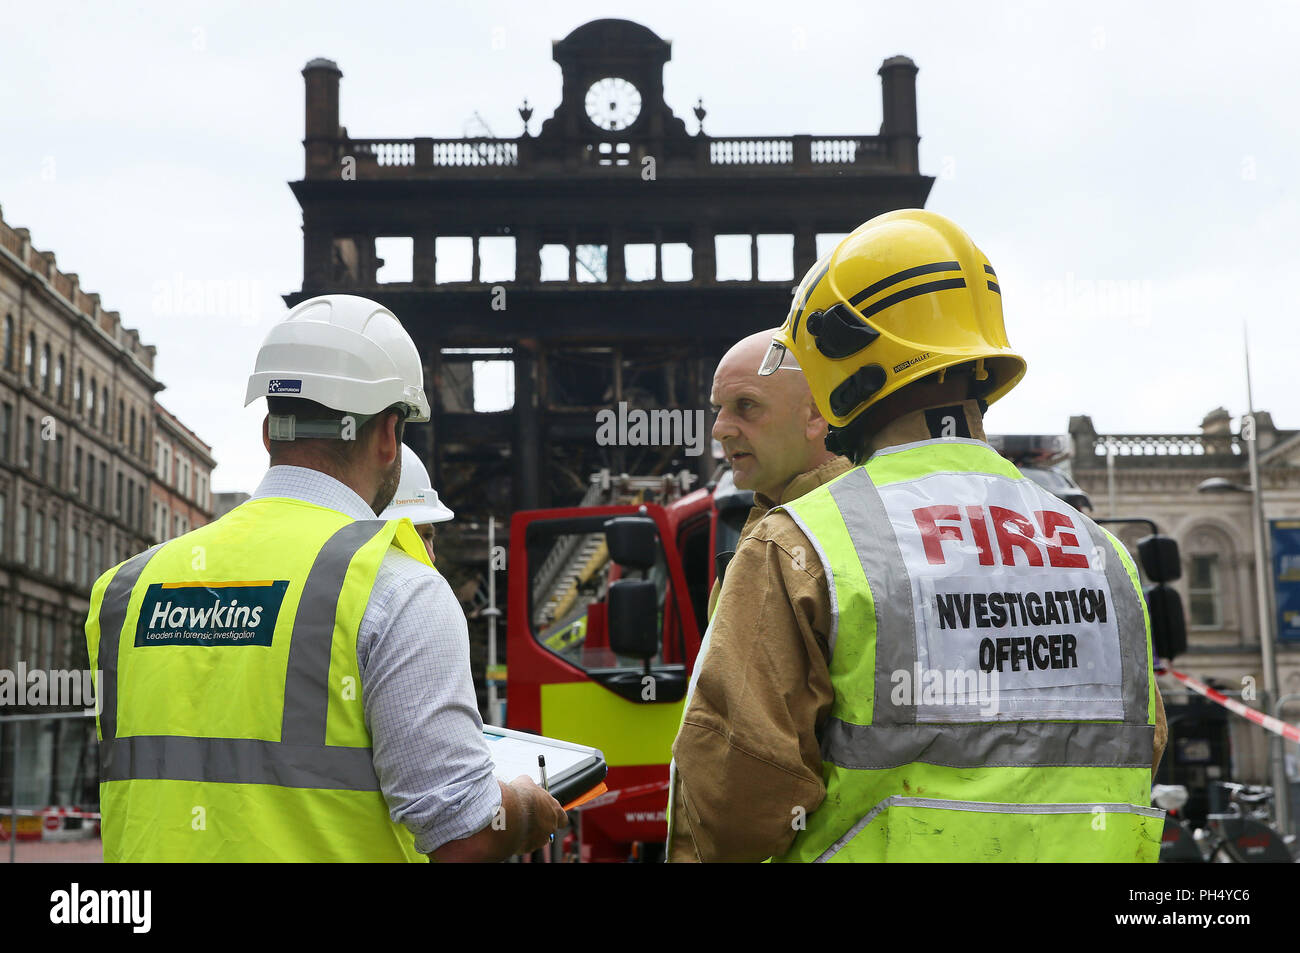 A Fire investigation officer at the historic five-storey Bank Buildings in Belfast city centre, where a major blaze broke out in the Primark store on Tuesday. - Stock Image